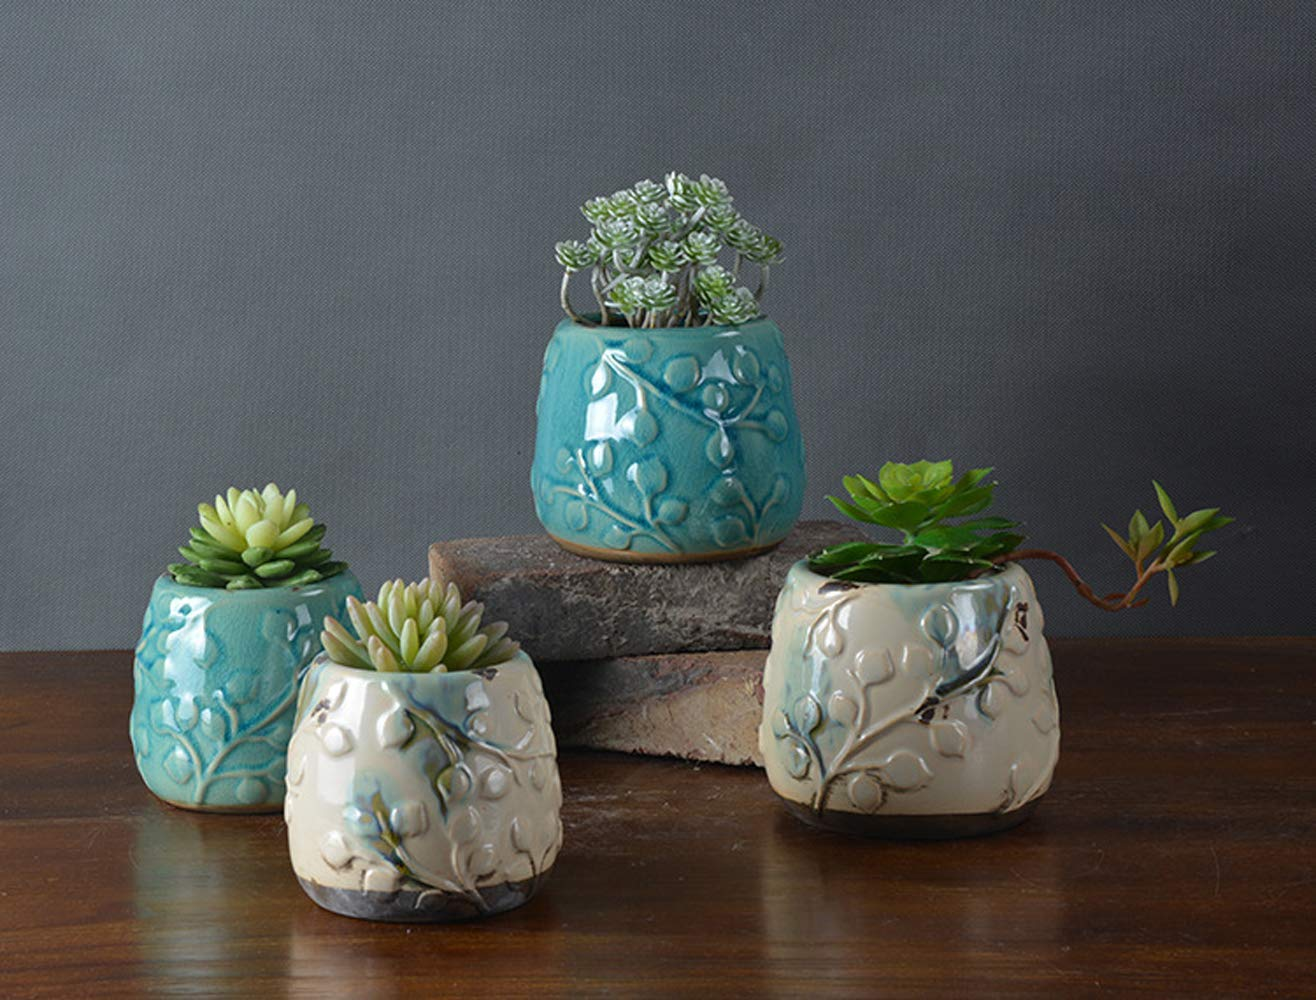 Better-Way Vintage Floral Embossed Succulent Plant Planter Ceramic Flower Container Butterfly Orchid Pot Windowsill Shabby Chic Home Decoration 4 Pack